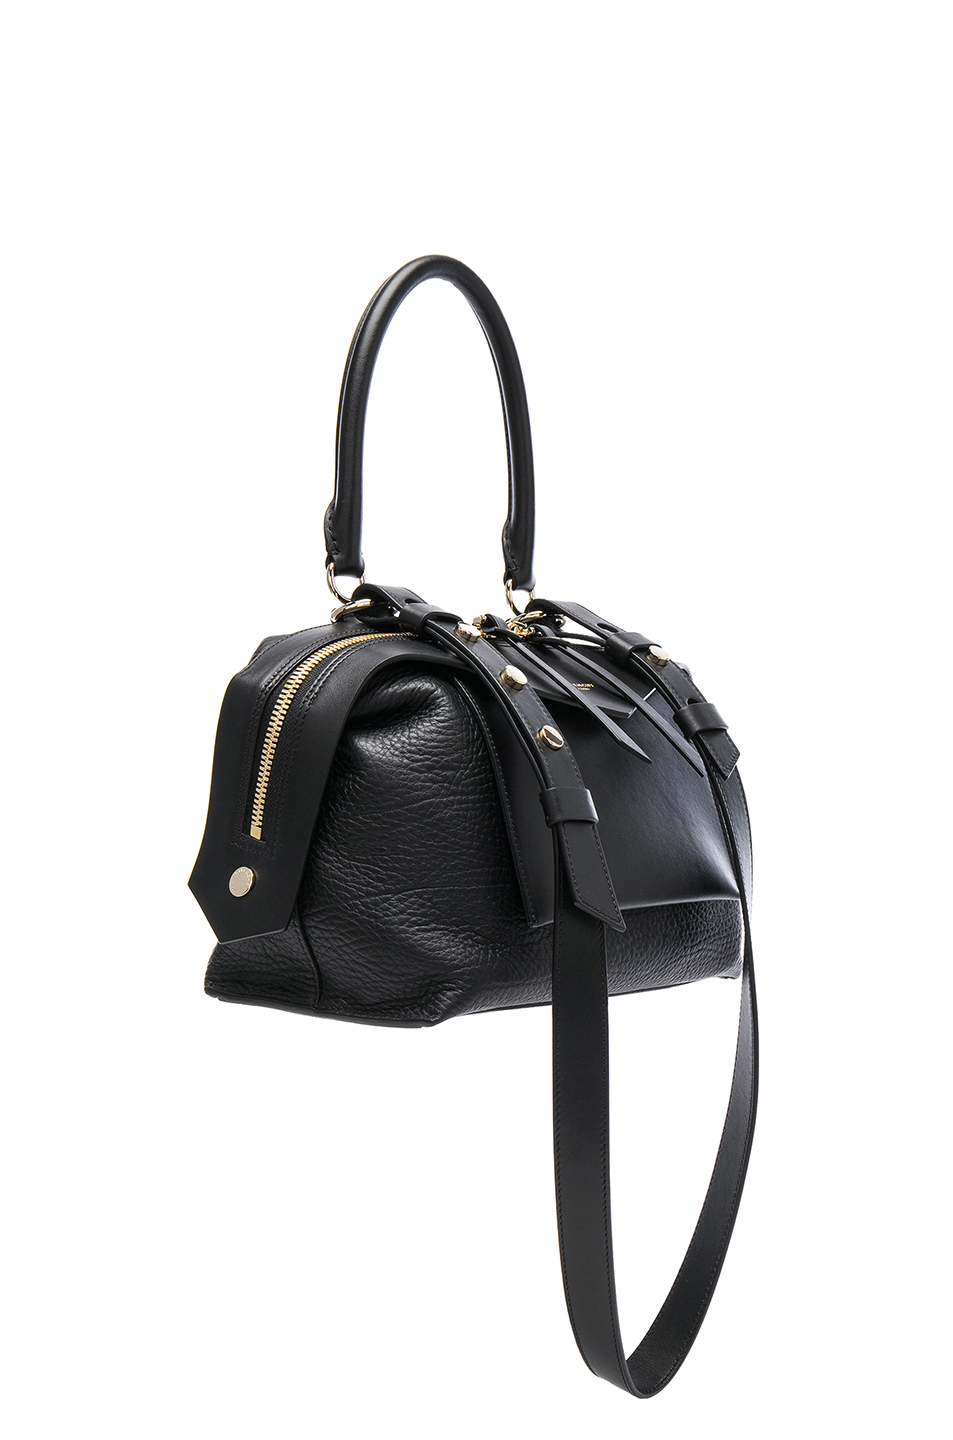 Buy Original Givenchy Small Grained   Smooth Leather Sway at ... cdac90d44f518